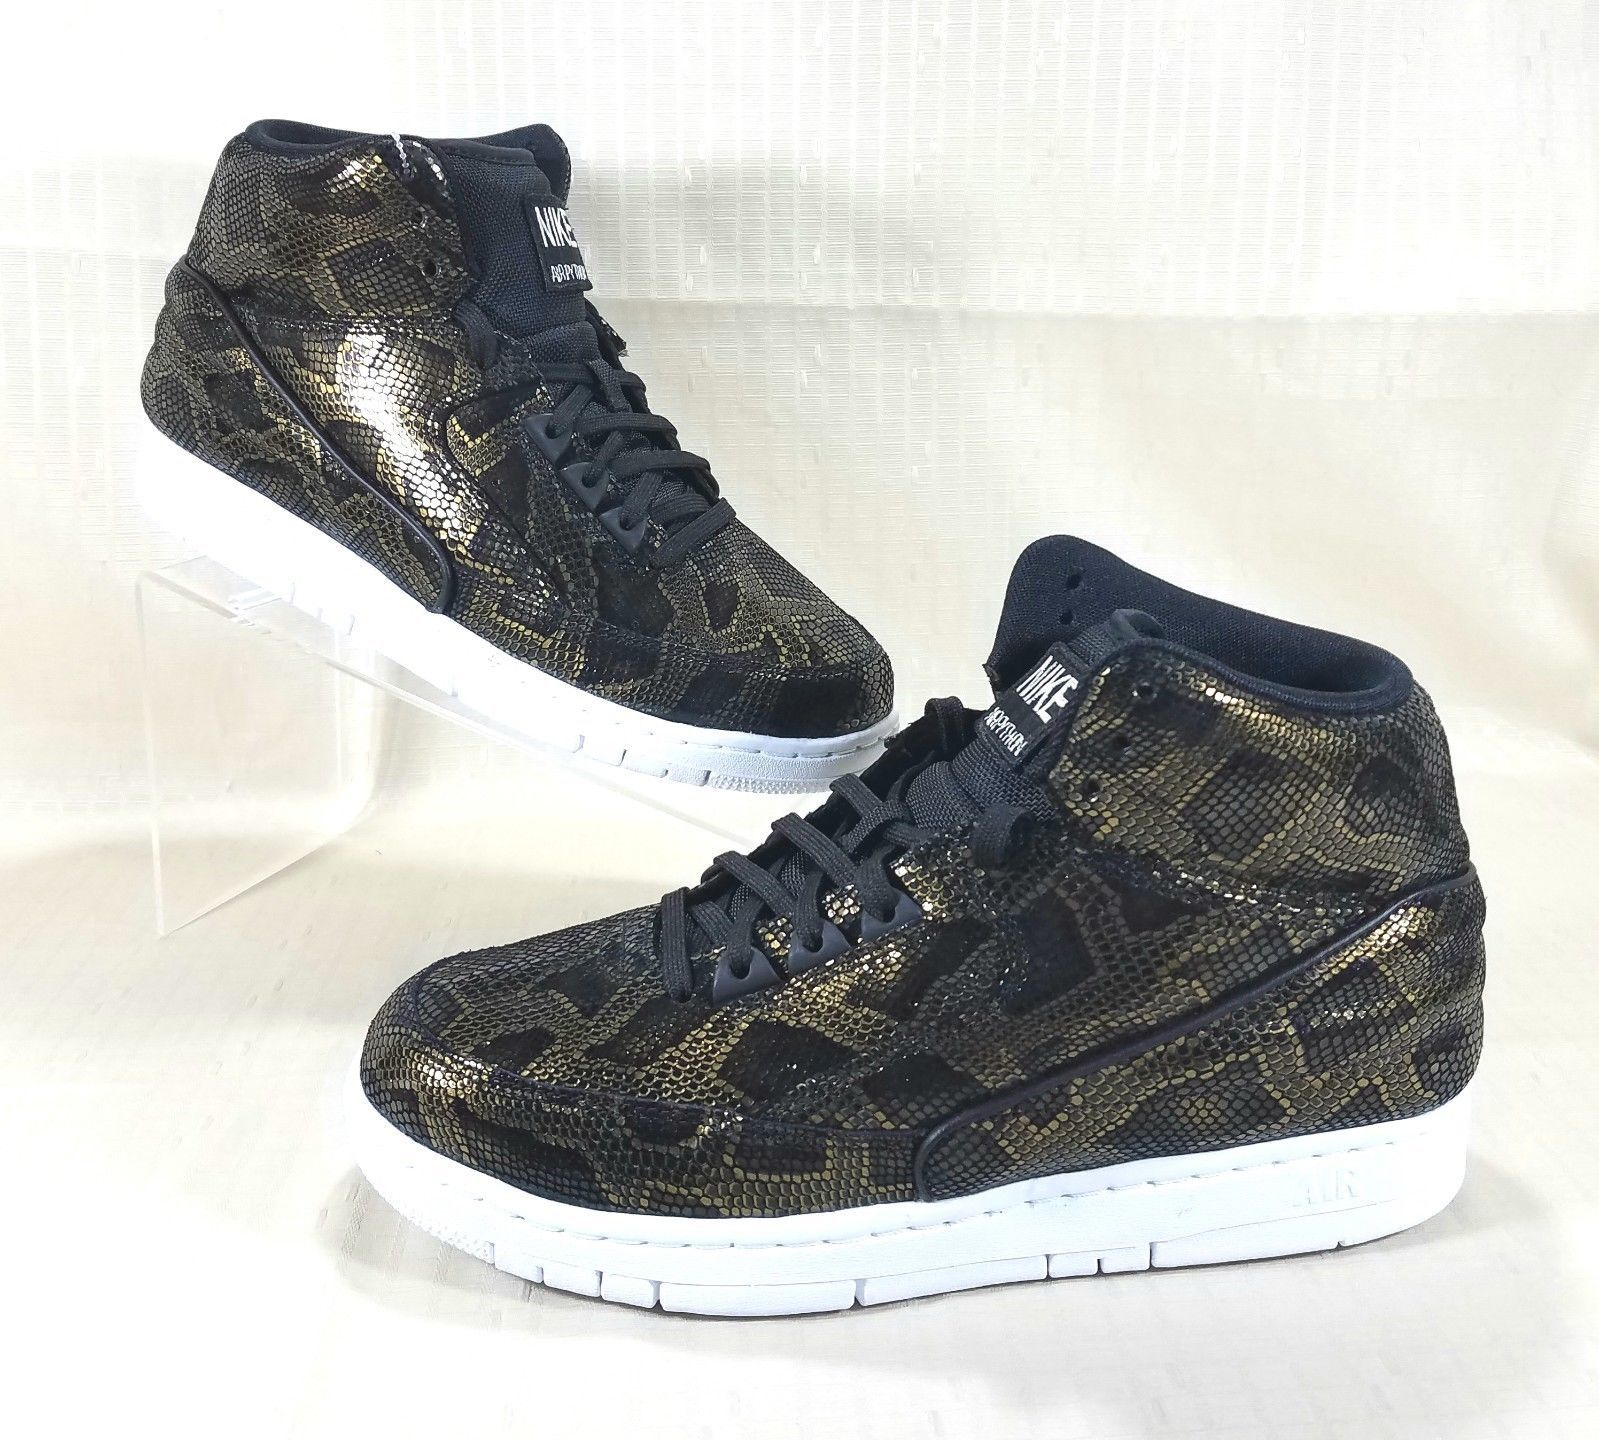 new product 7eb08 6b6c5 S l1600. S l1600. Nike Air Python Premium Sneakers Men s Size 9 Black   Metallic  Gold 705066-002